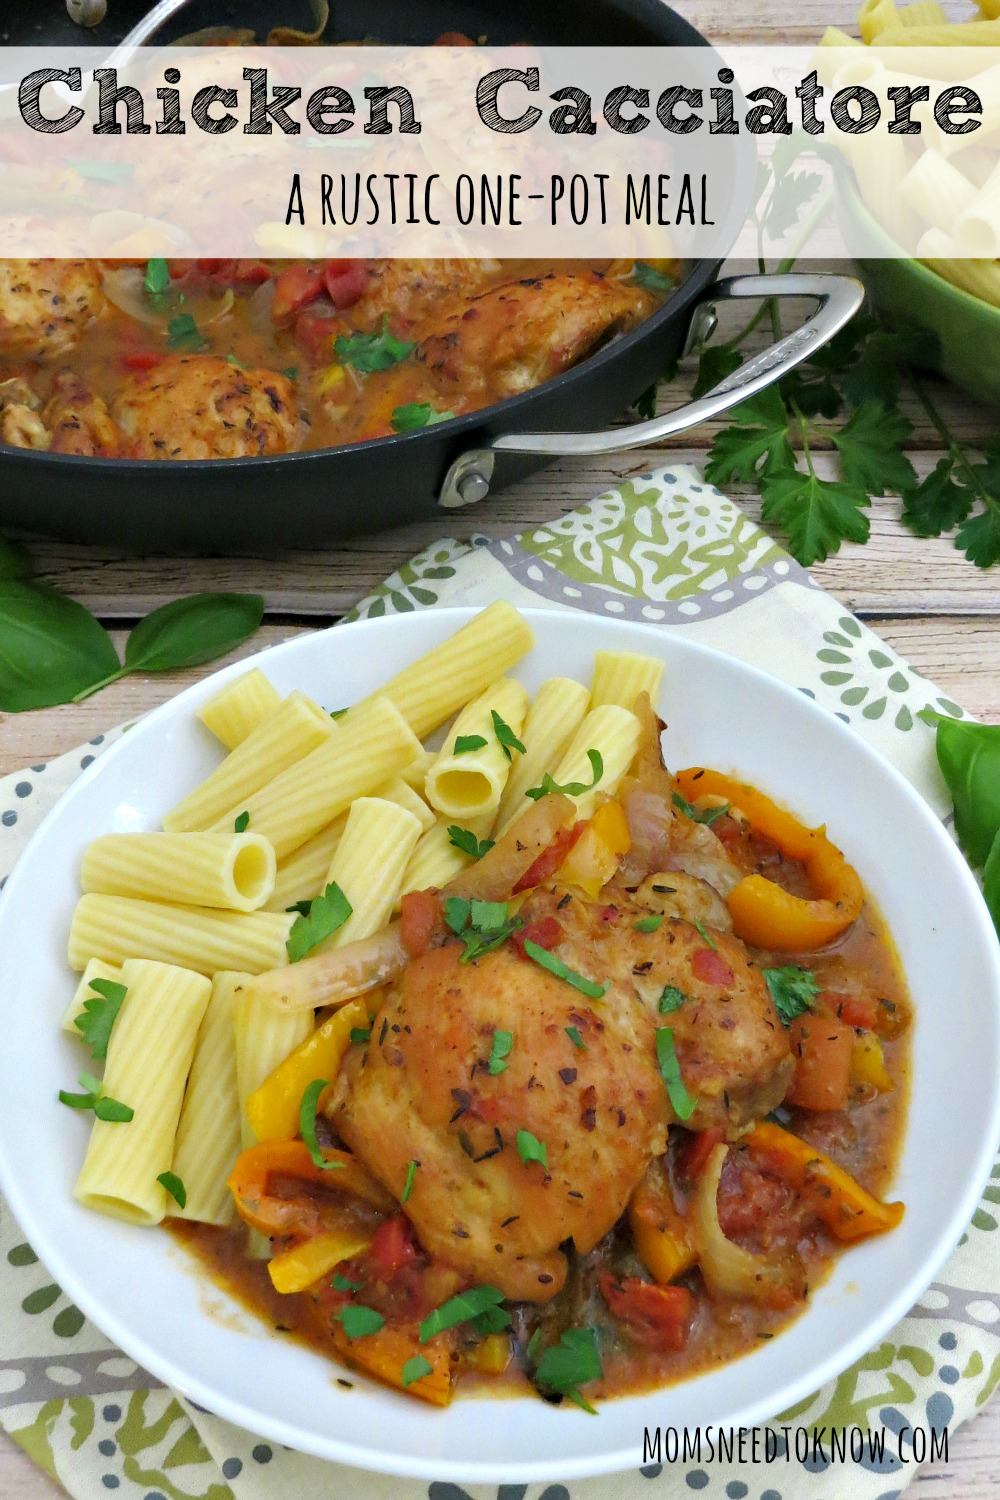 Chicken cacciatore recipe moms need to know chicken cacciatore is a one pot rustic dish thats comforting and absolutely delicious forumfinder Choice Image